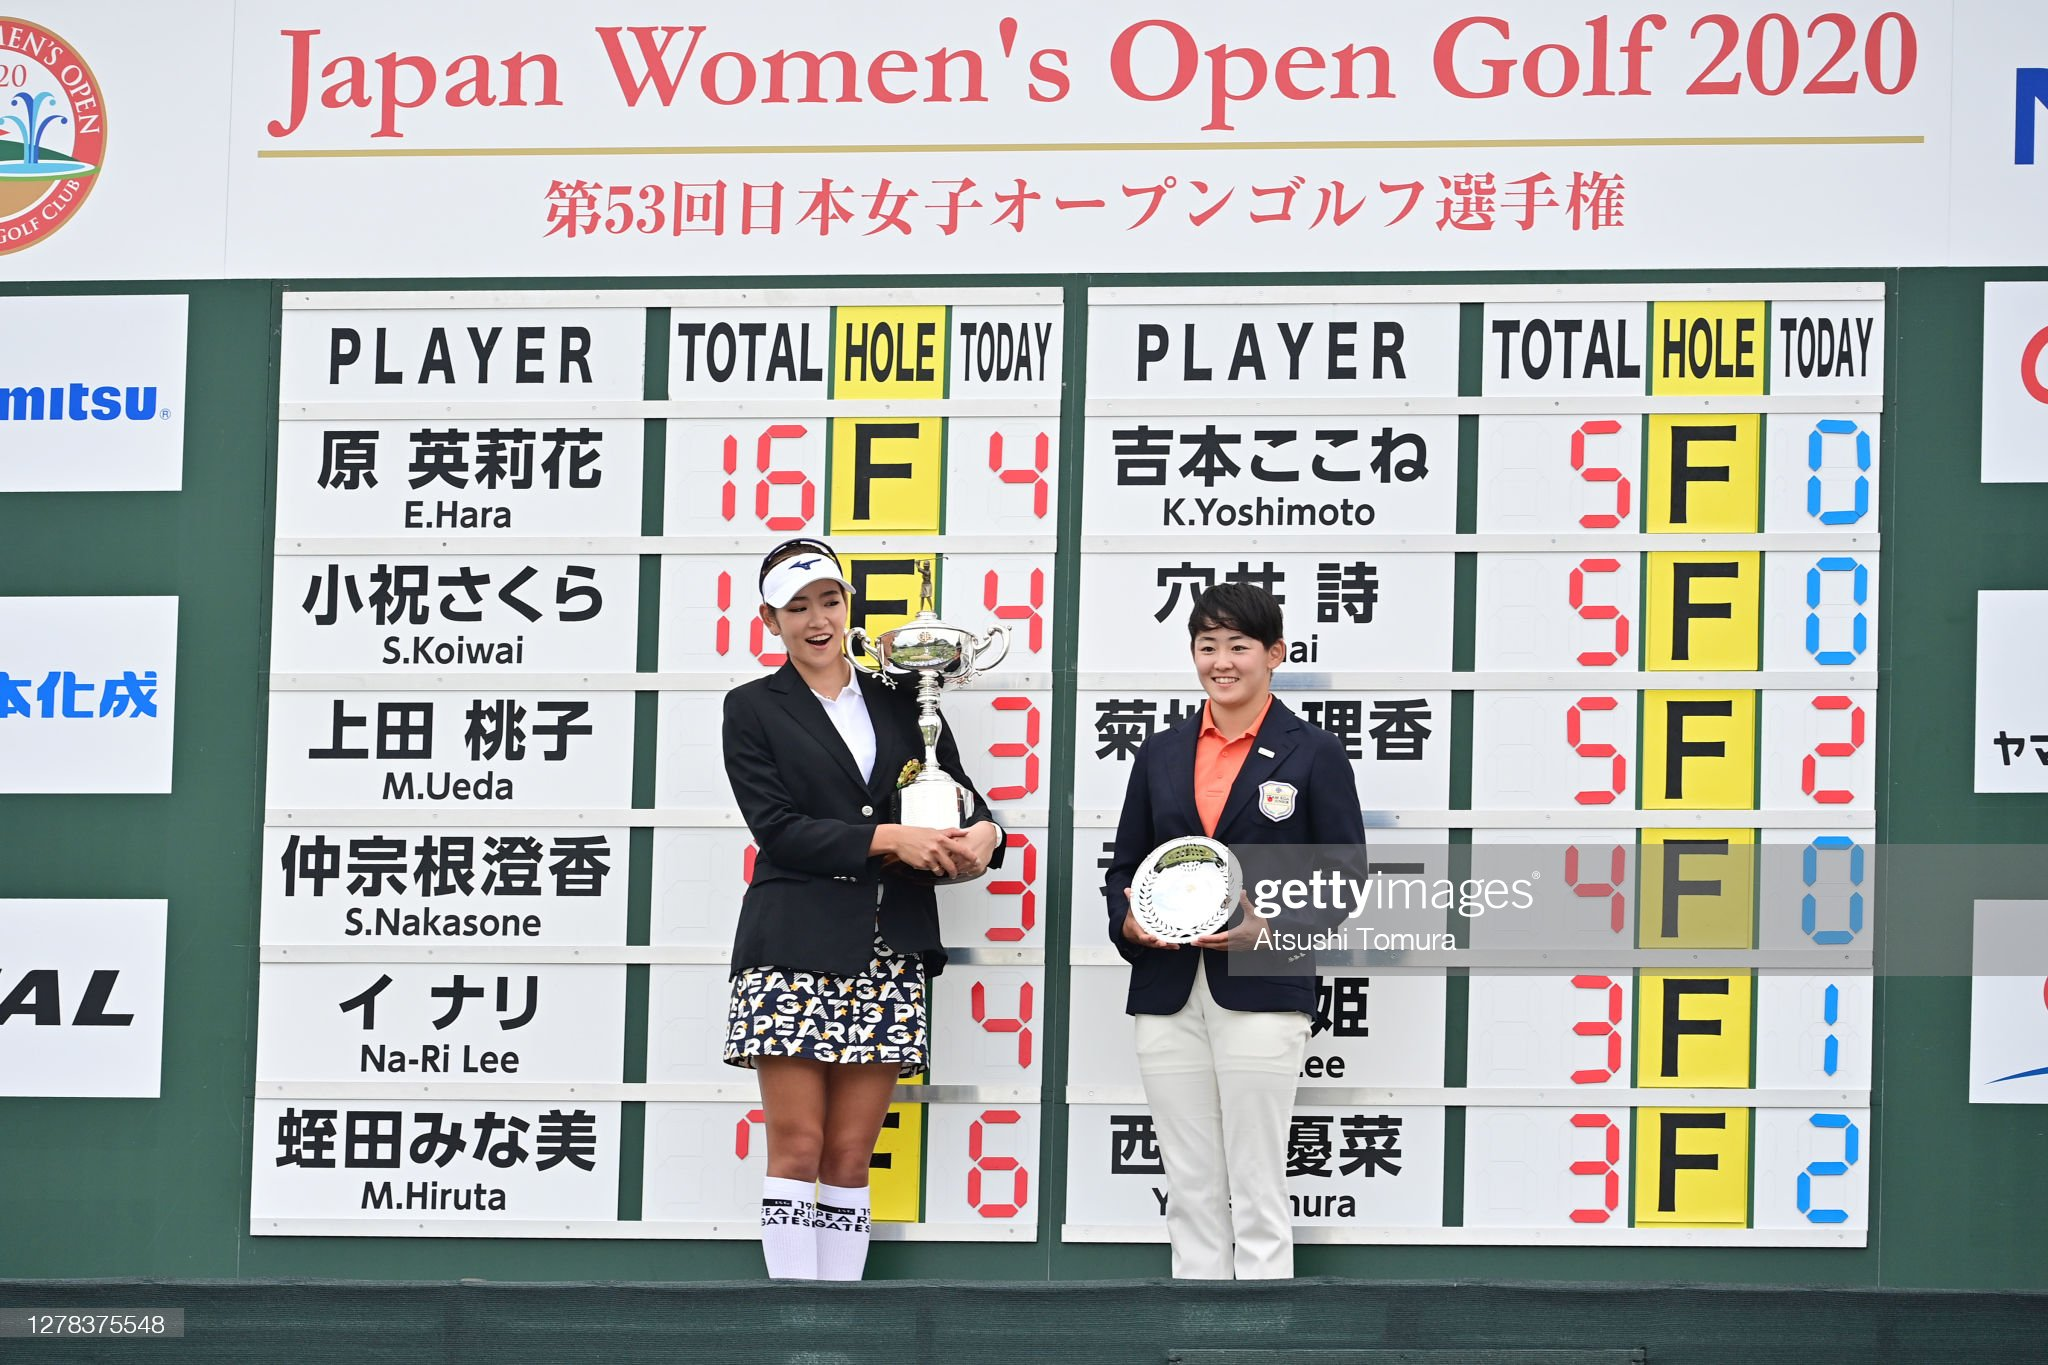 https://media.gettyimages.com/photos/erika-hara-of-japan-and-akie-iwai-of-japan-pose-with-the-trophy-after-picture-id1278375548?s=2048x2048